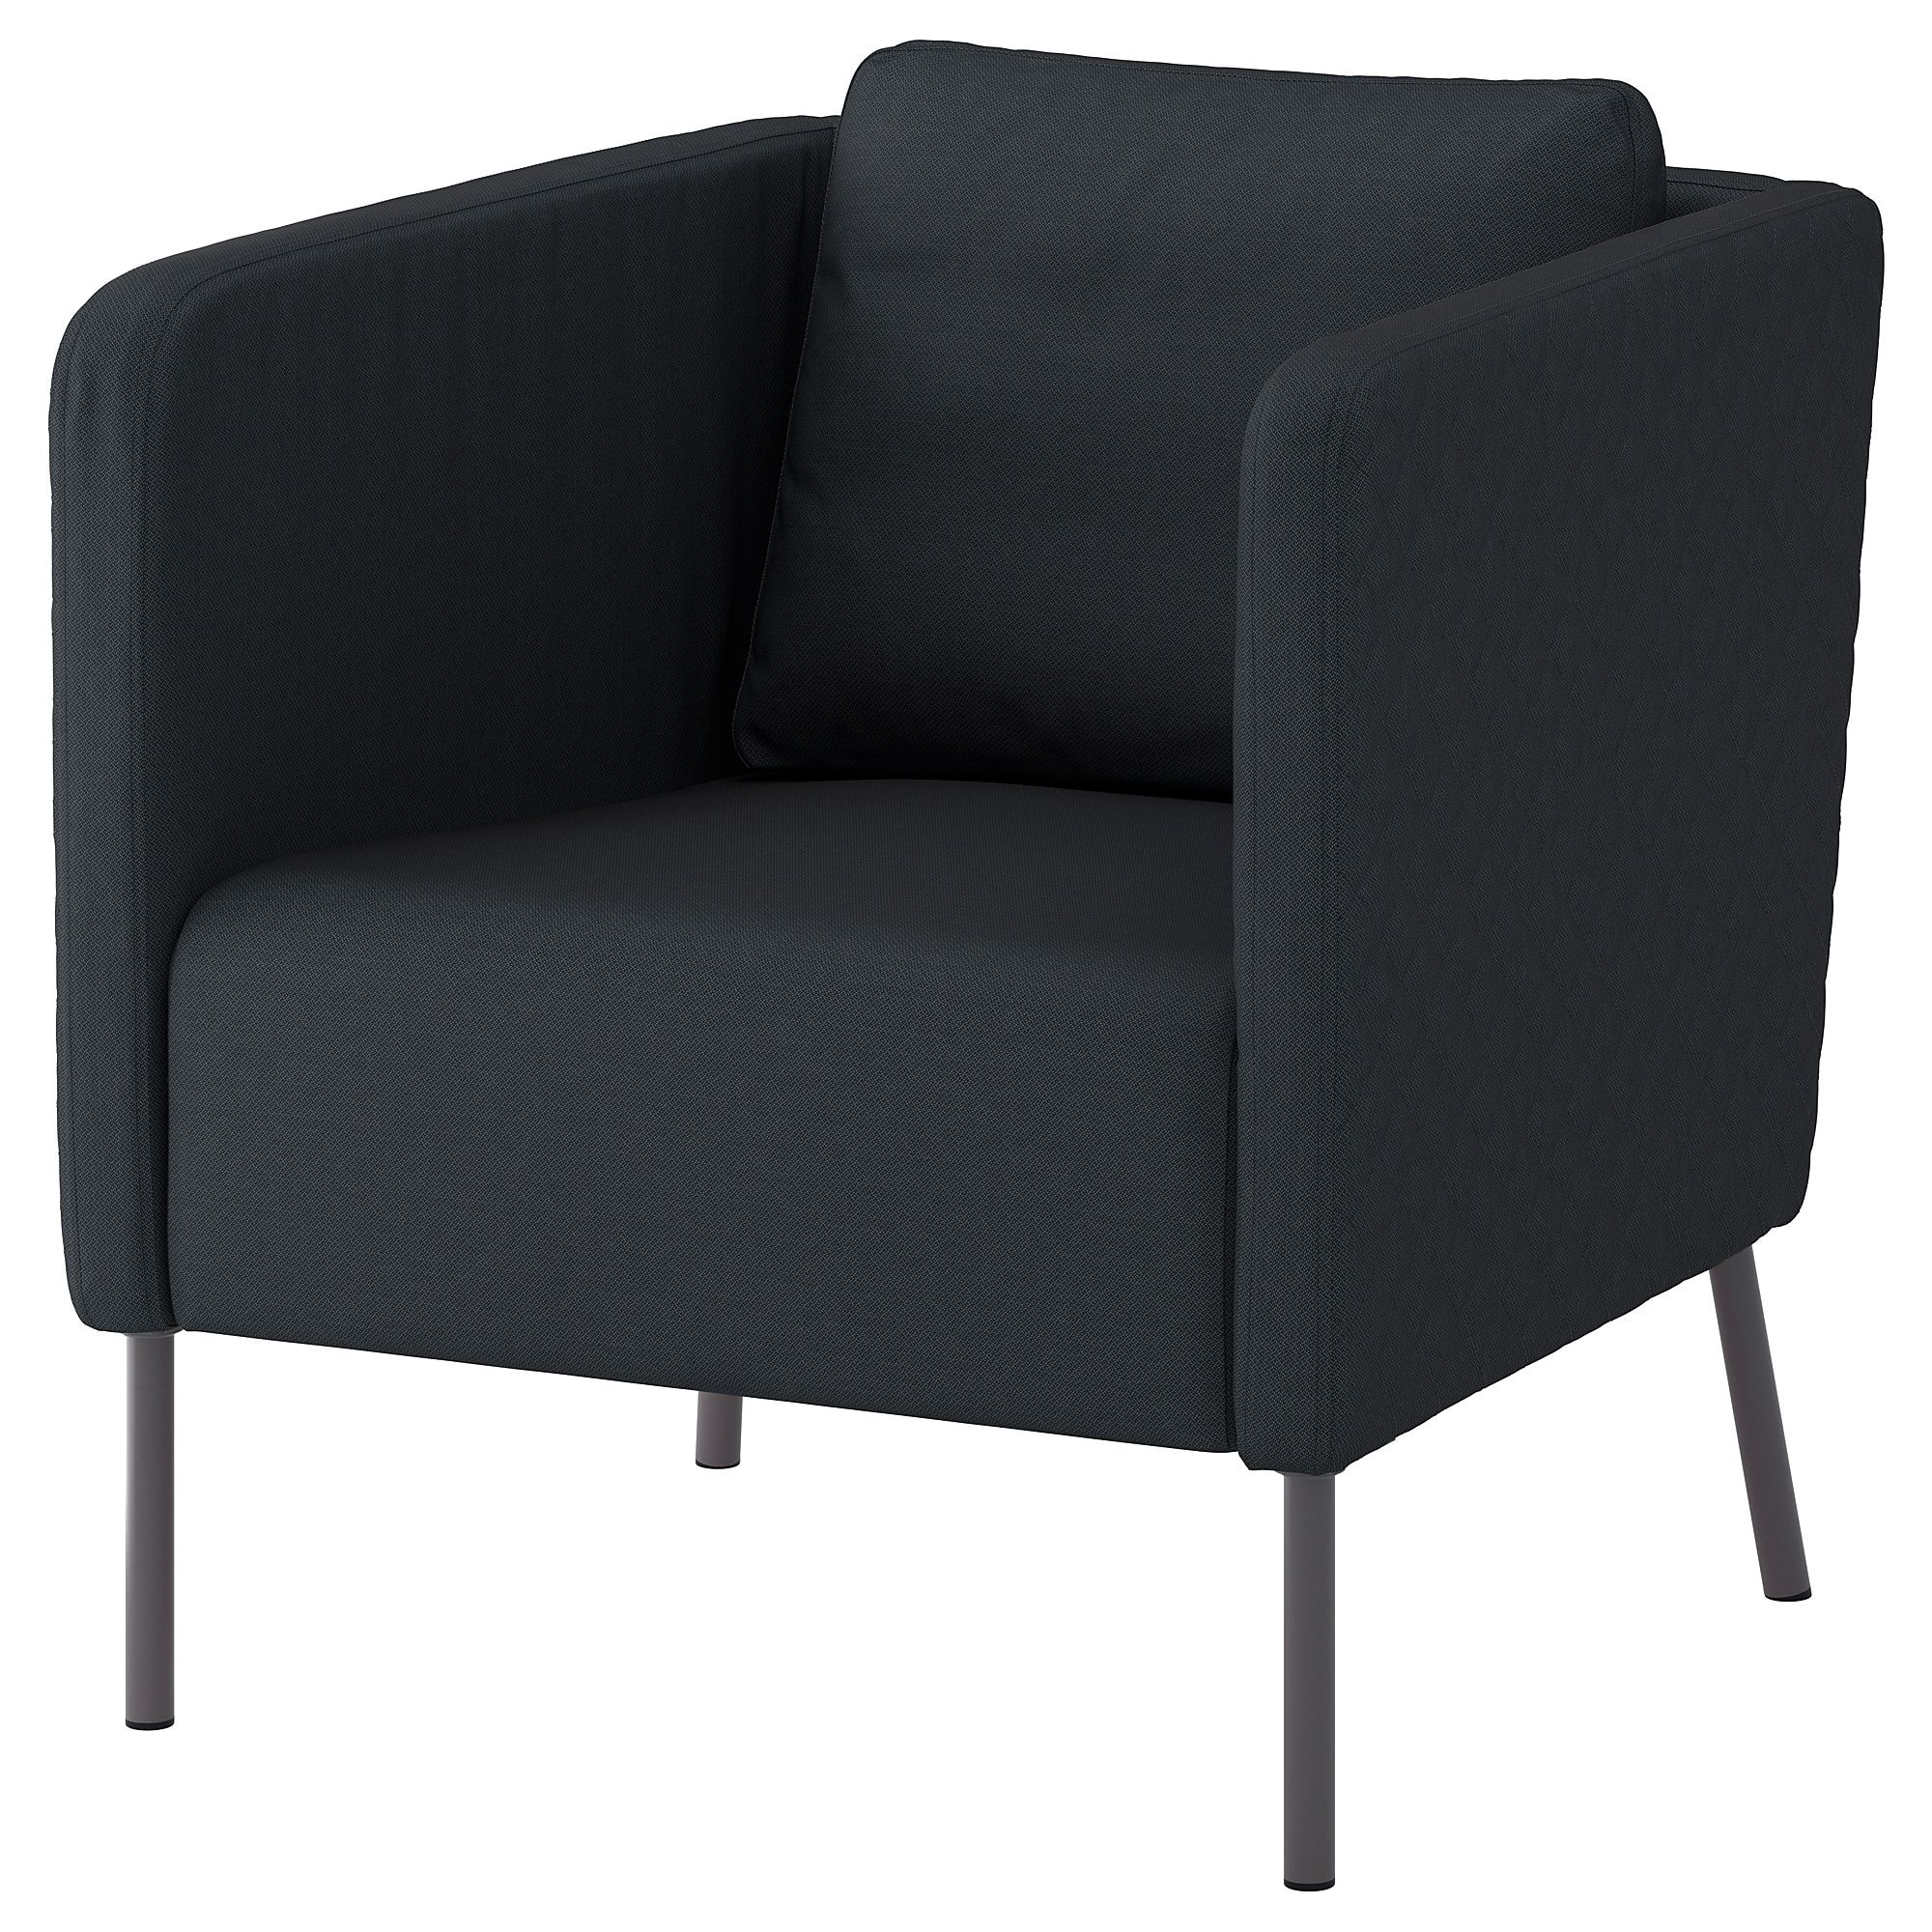 Ikea Sessel Kissen EkerÖ Sessel Idekulla Blau In 2019 Products Pinterest Ikea